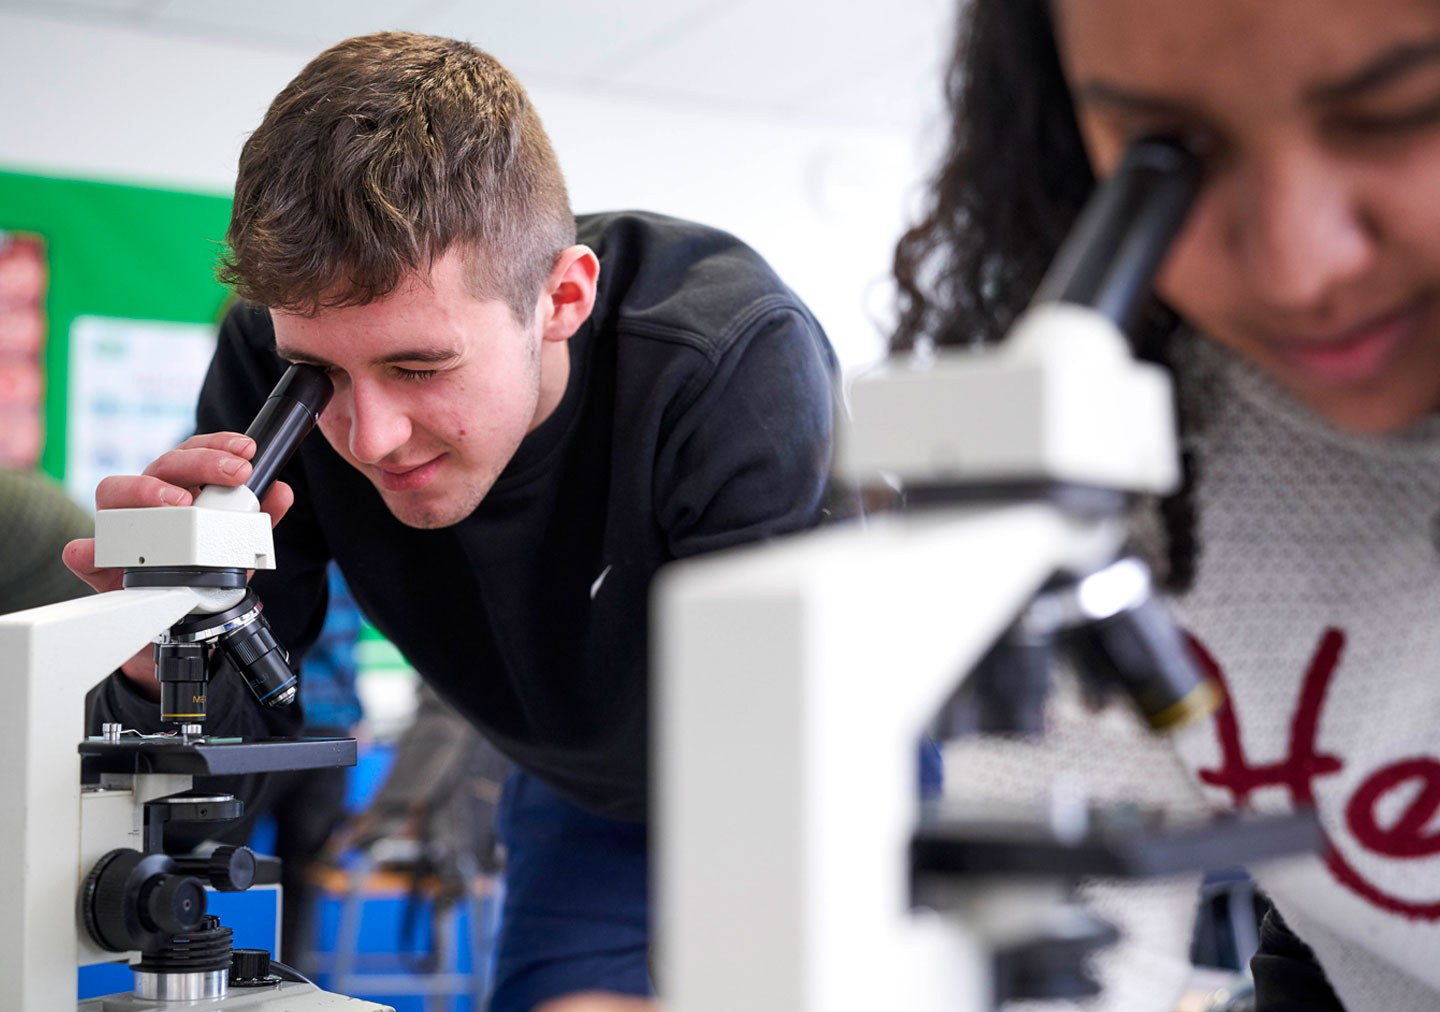 Two students look at samples under microscopes